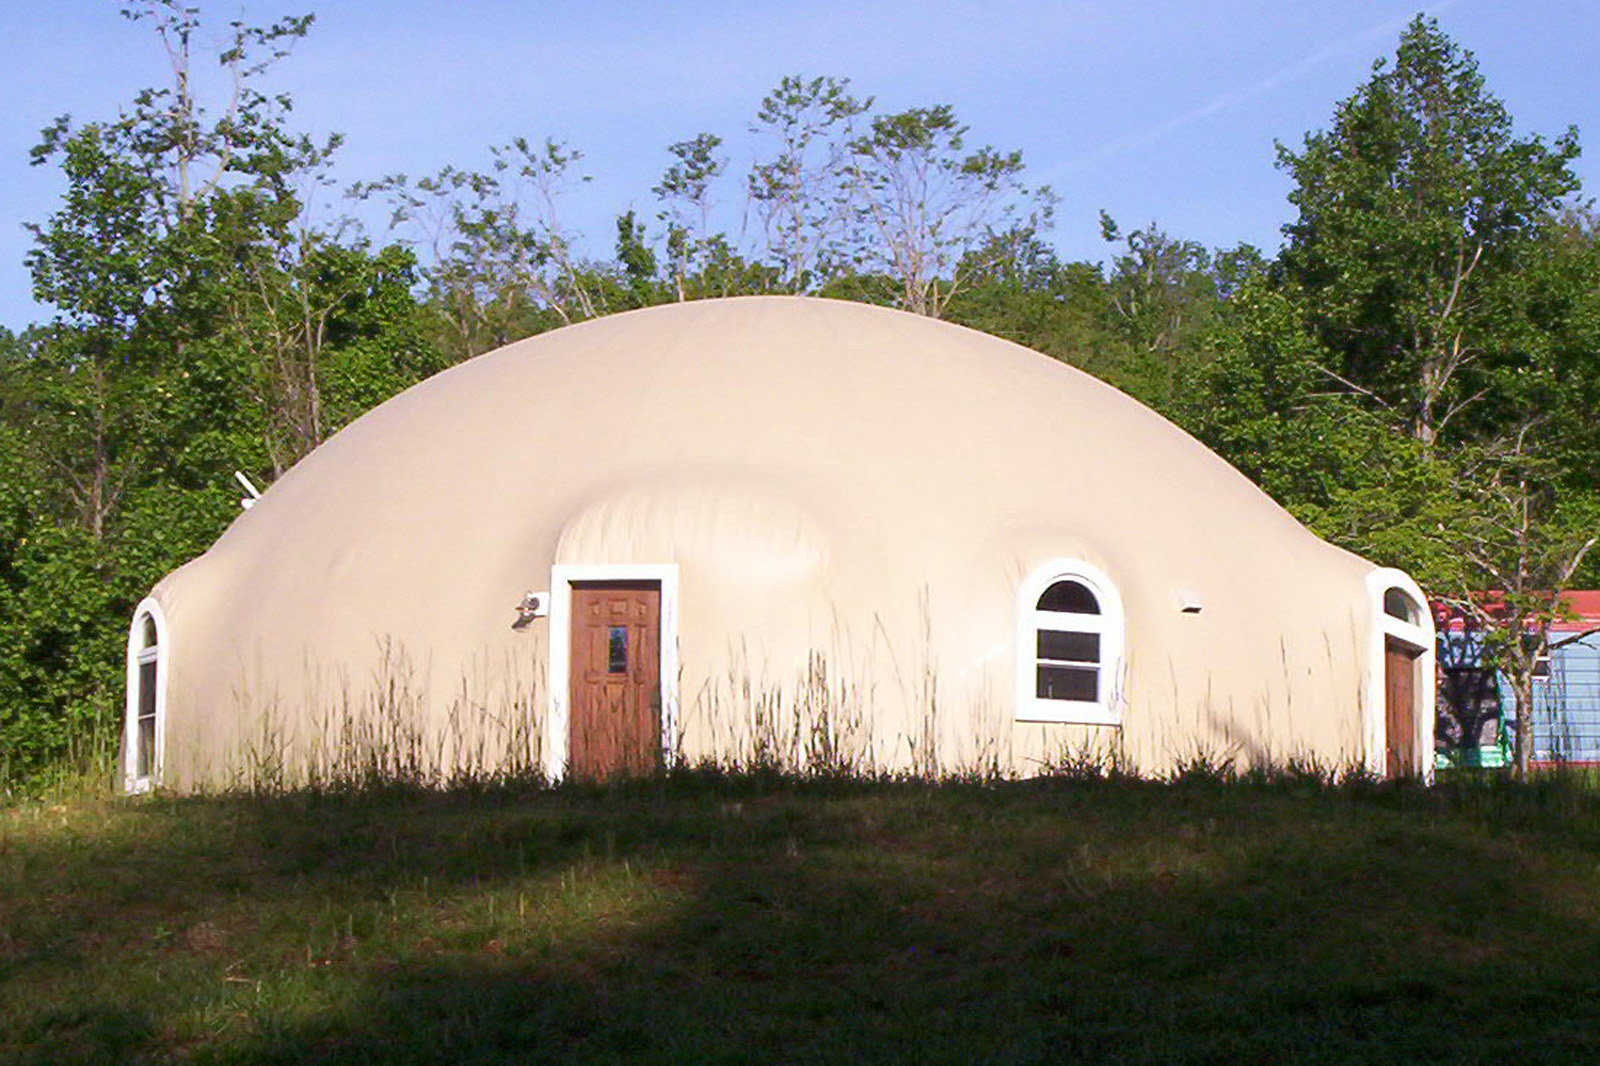 Dome Home Design Ideas: Practical Universal Design Ideas For The Dome Home Builder